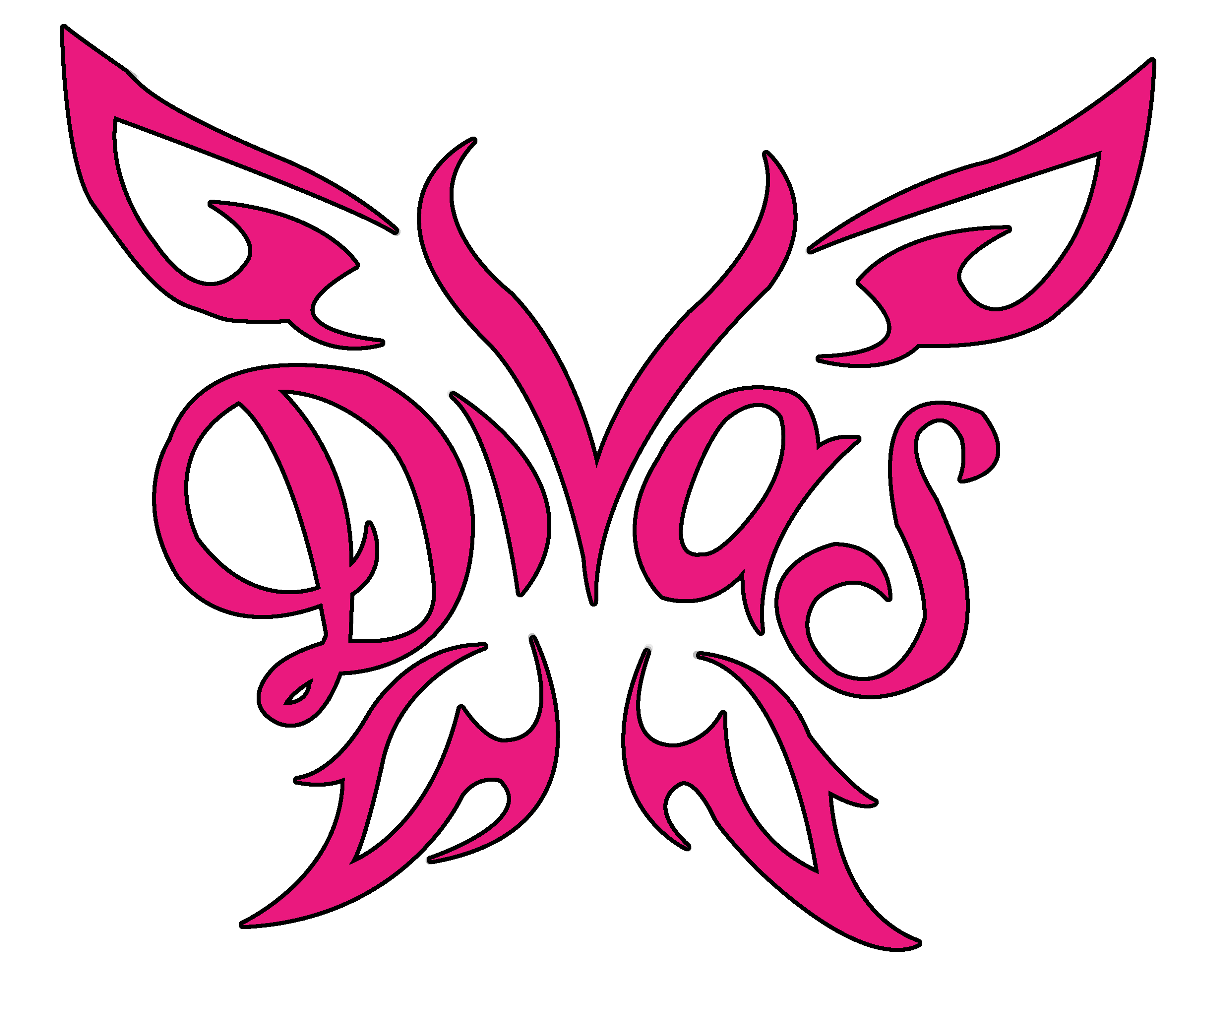 Wrestlers clipart wwe divas. Sticker by wrestling stickers